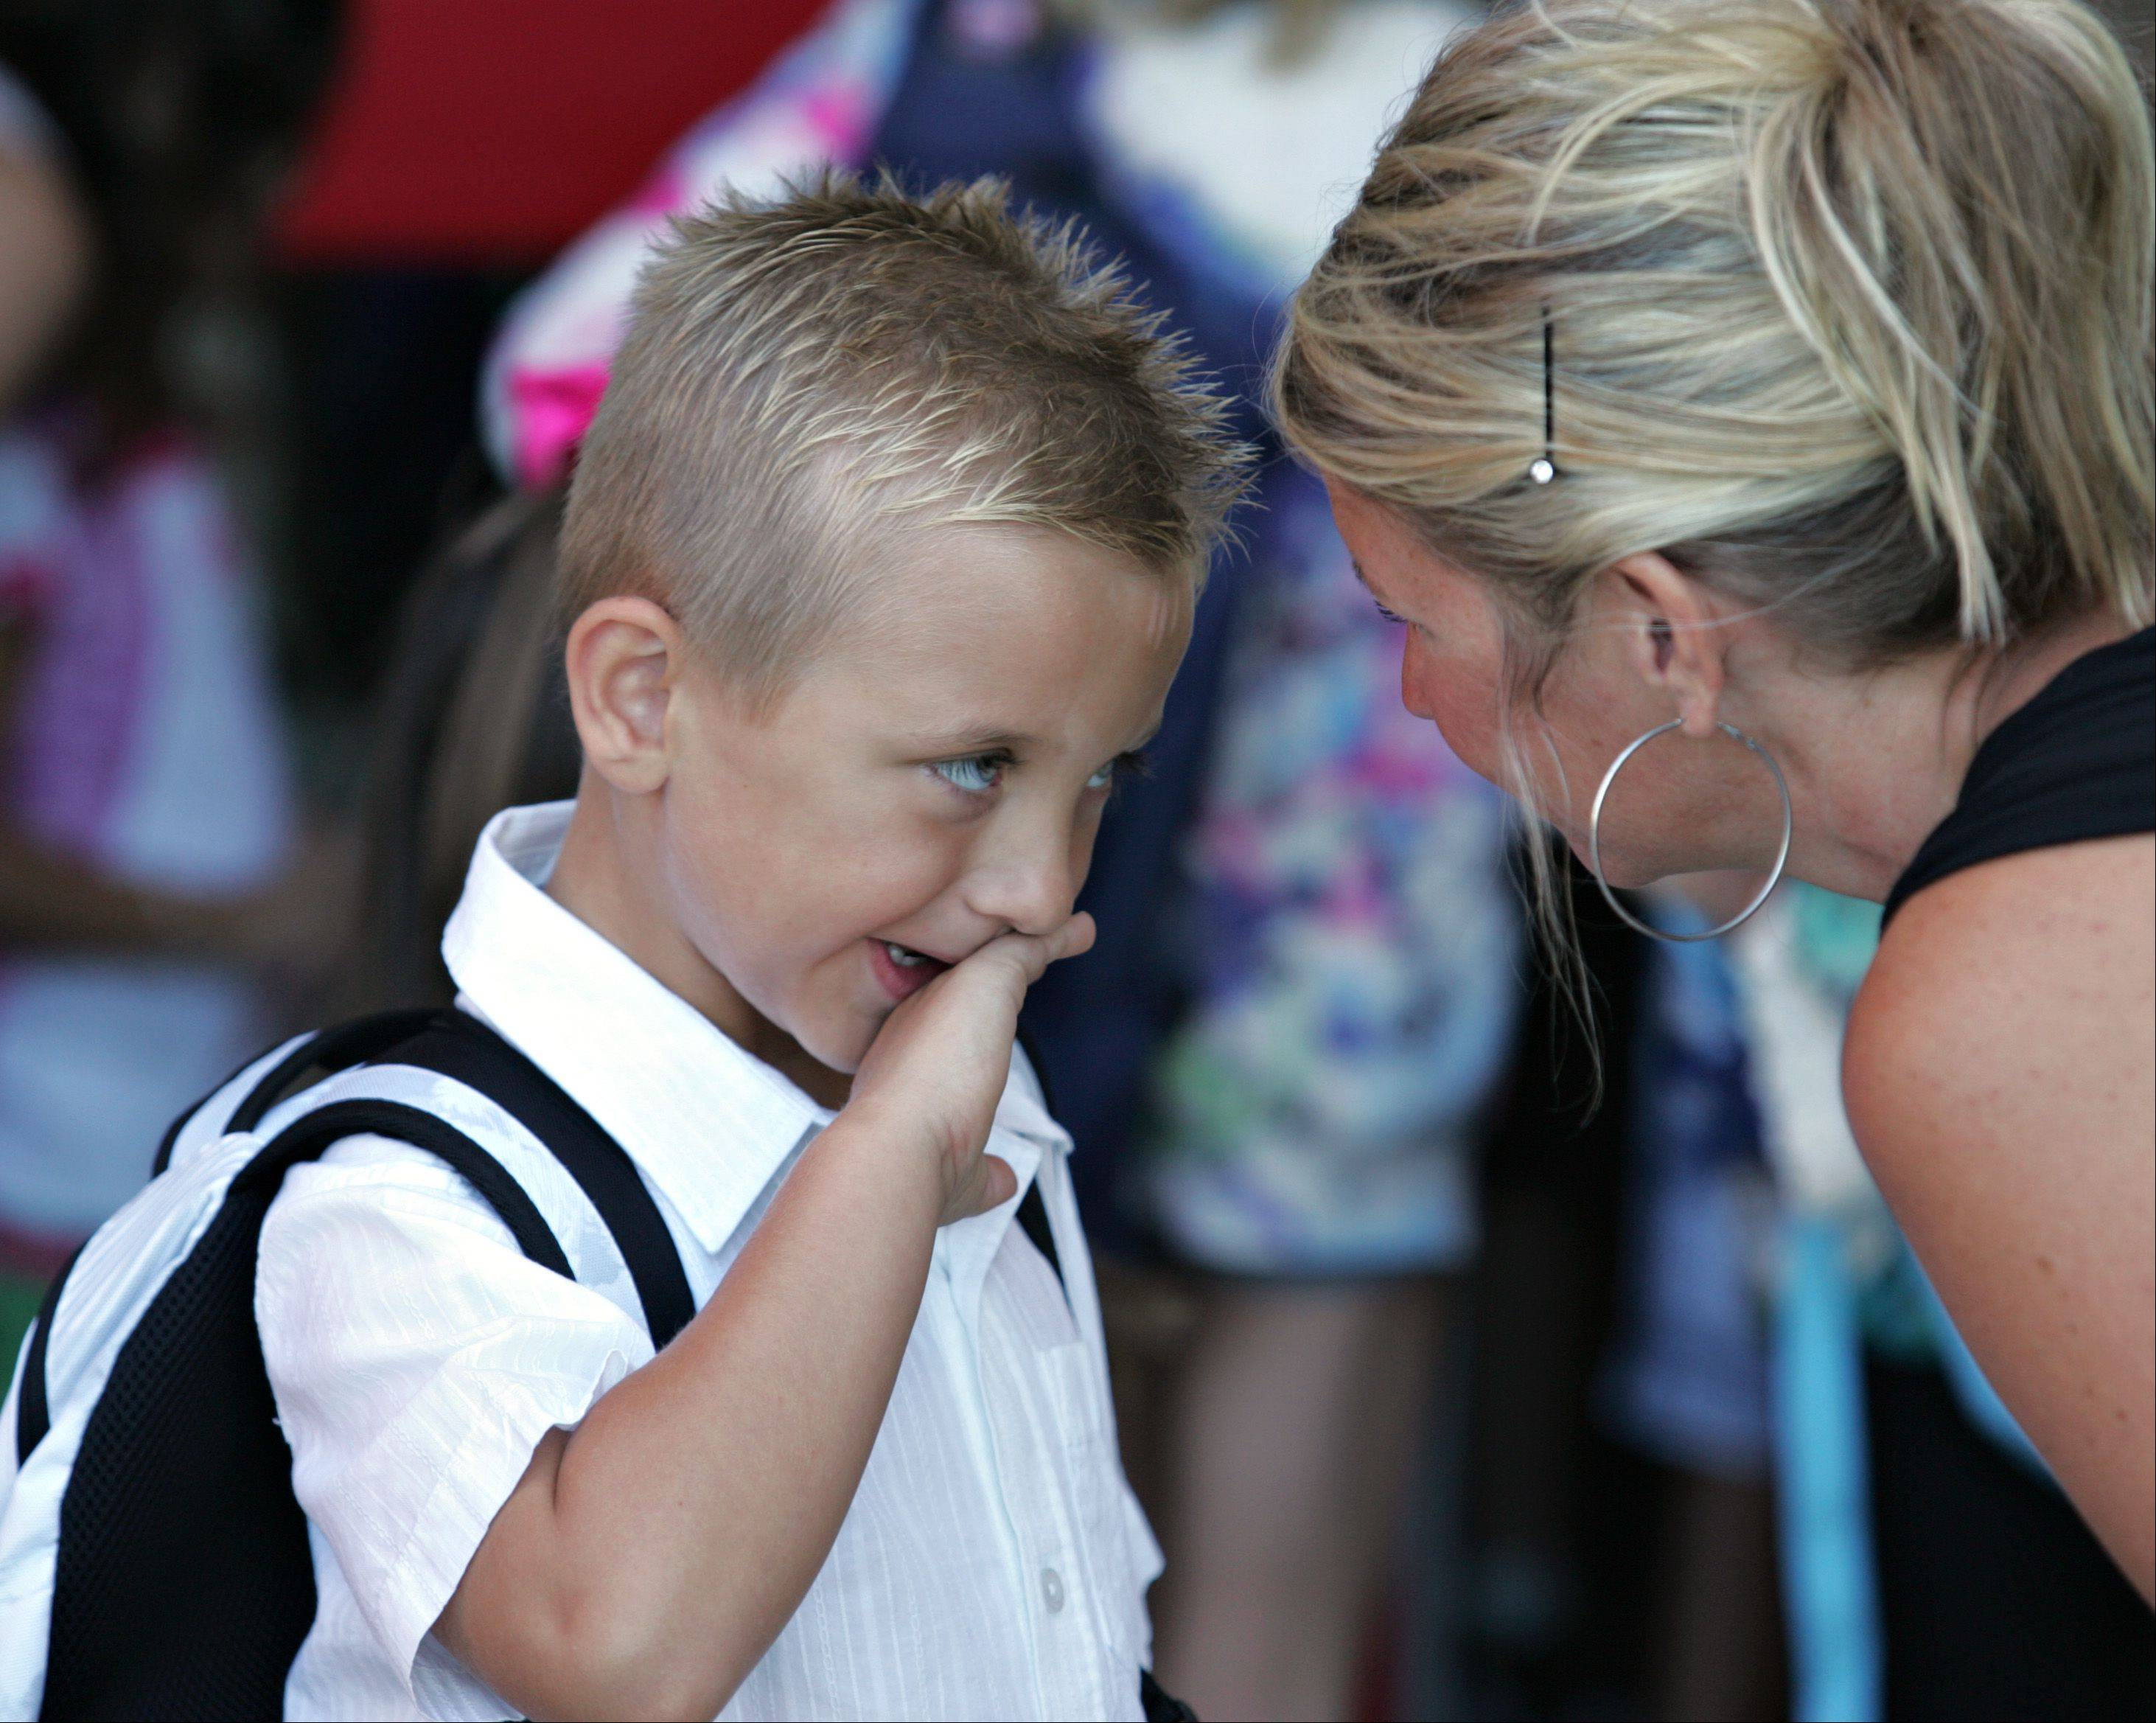 First-grader Mason Rosborough wipes his mouth after his mother Caryn tried to do some last-minute cleanup on him just before the first day of school at Country Trails Elementary School in Elgin.